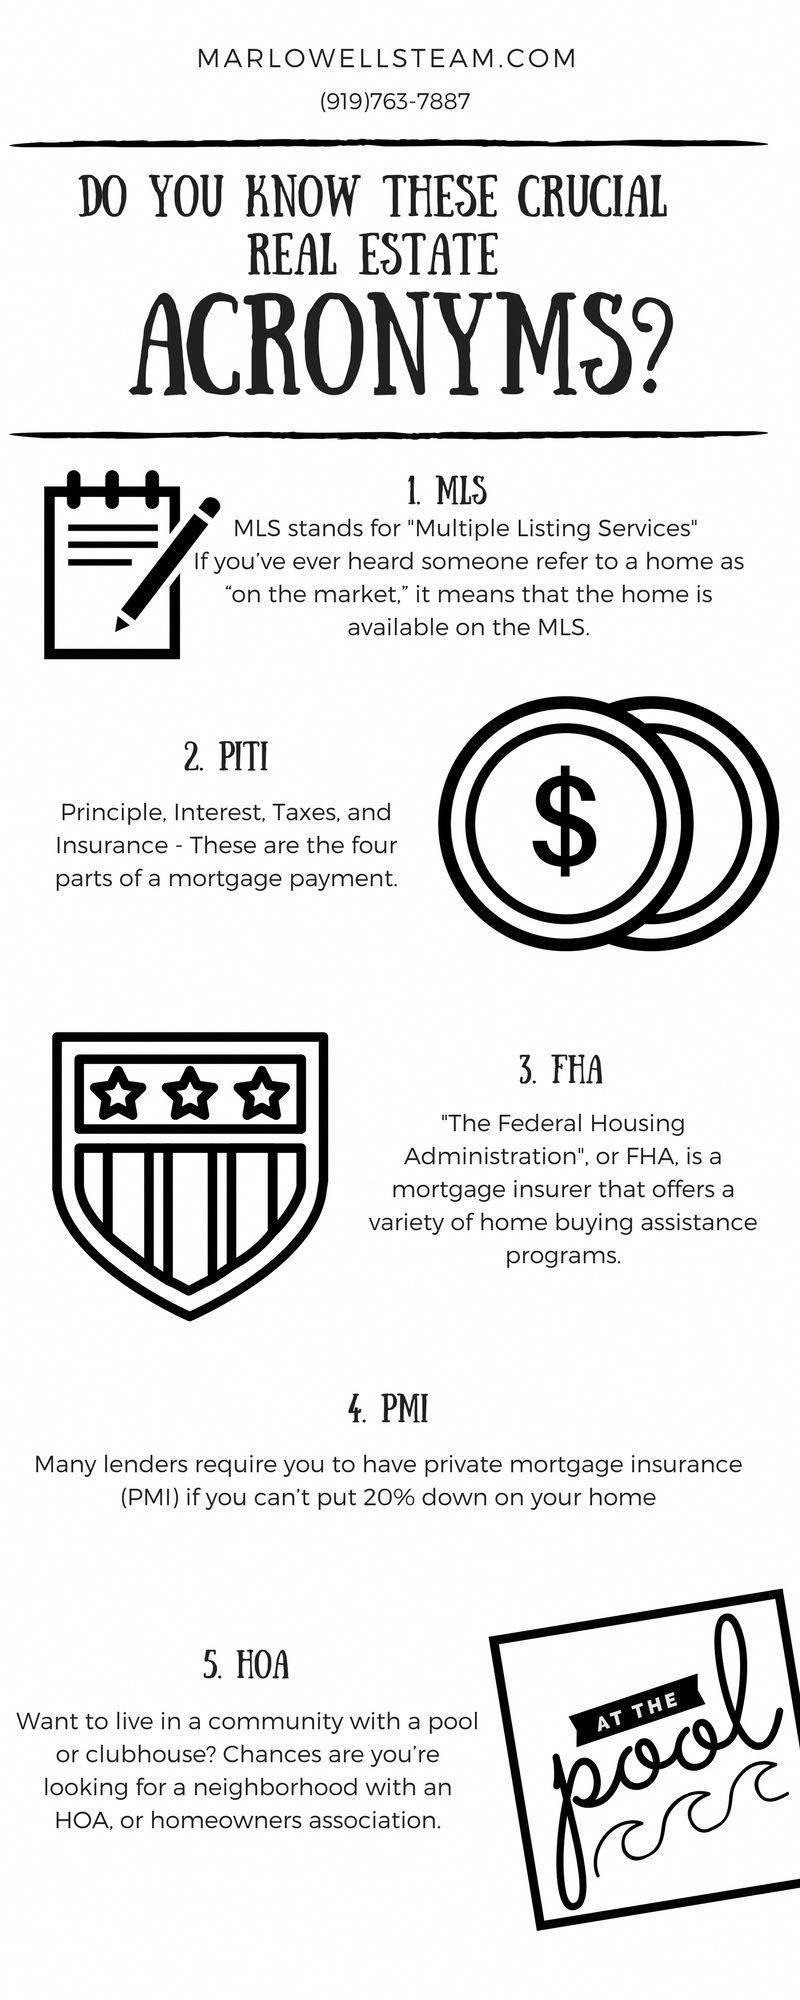 Do you know these crucial real estate acronyms